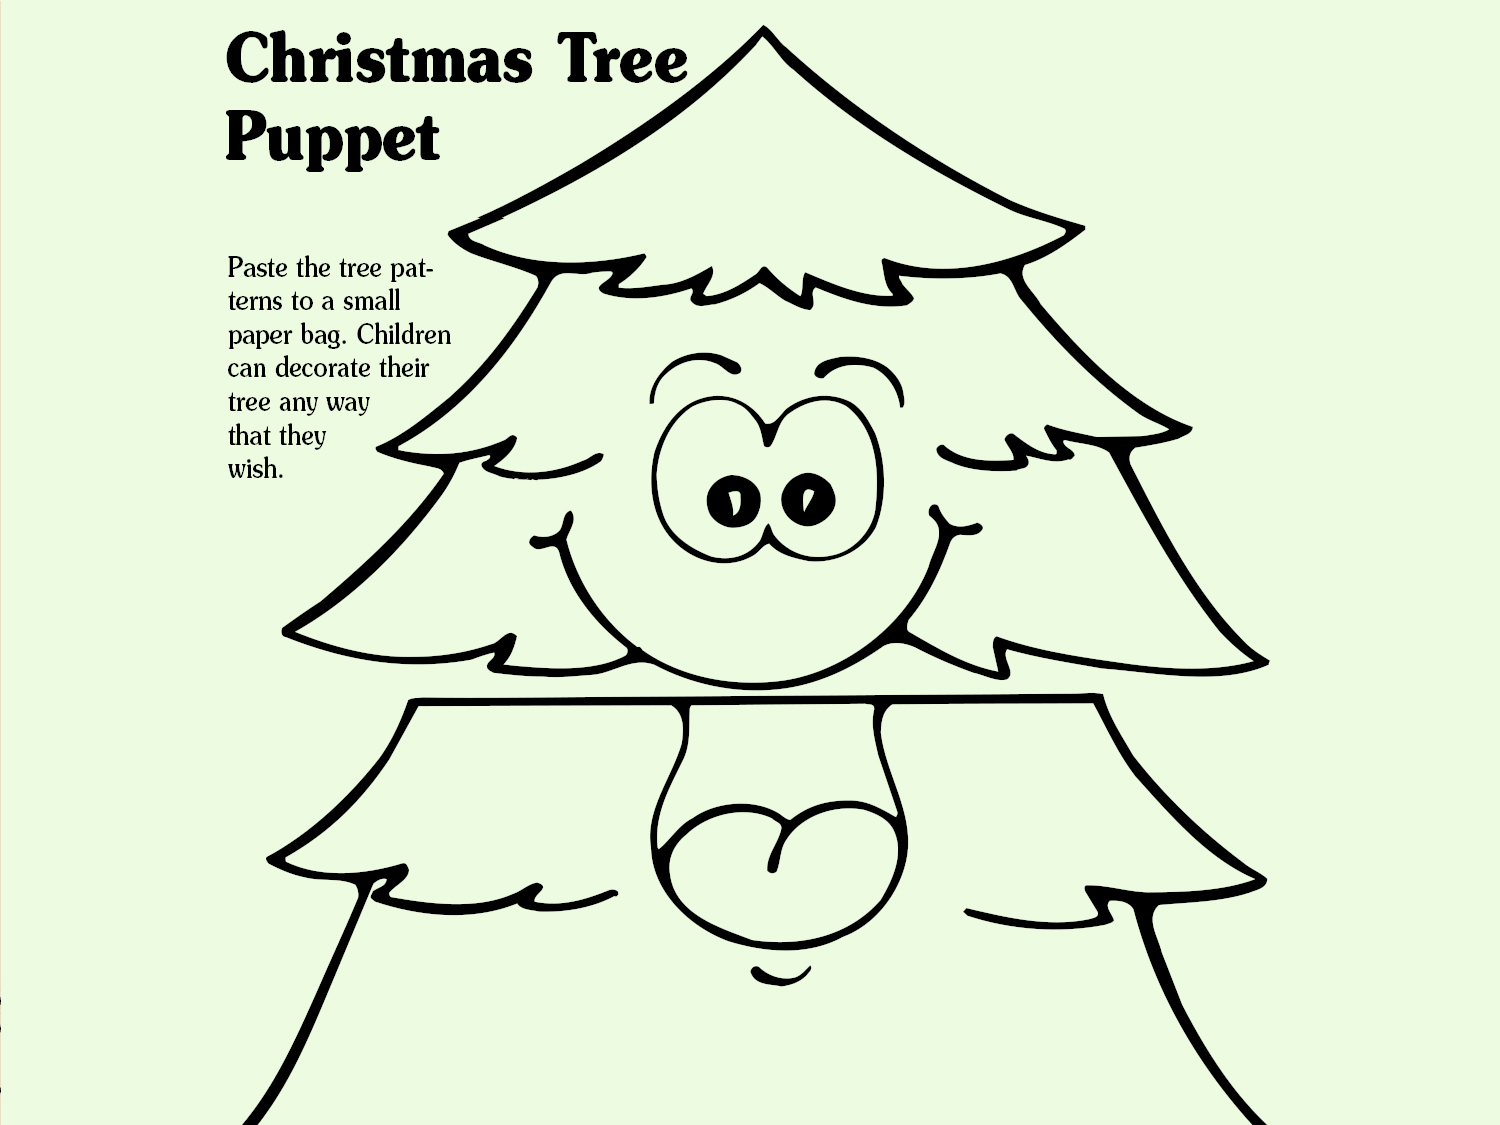 photograph regarding Christmas Tree Printable named Xmas Tree Puppet Worksheets Printables Scholastic